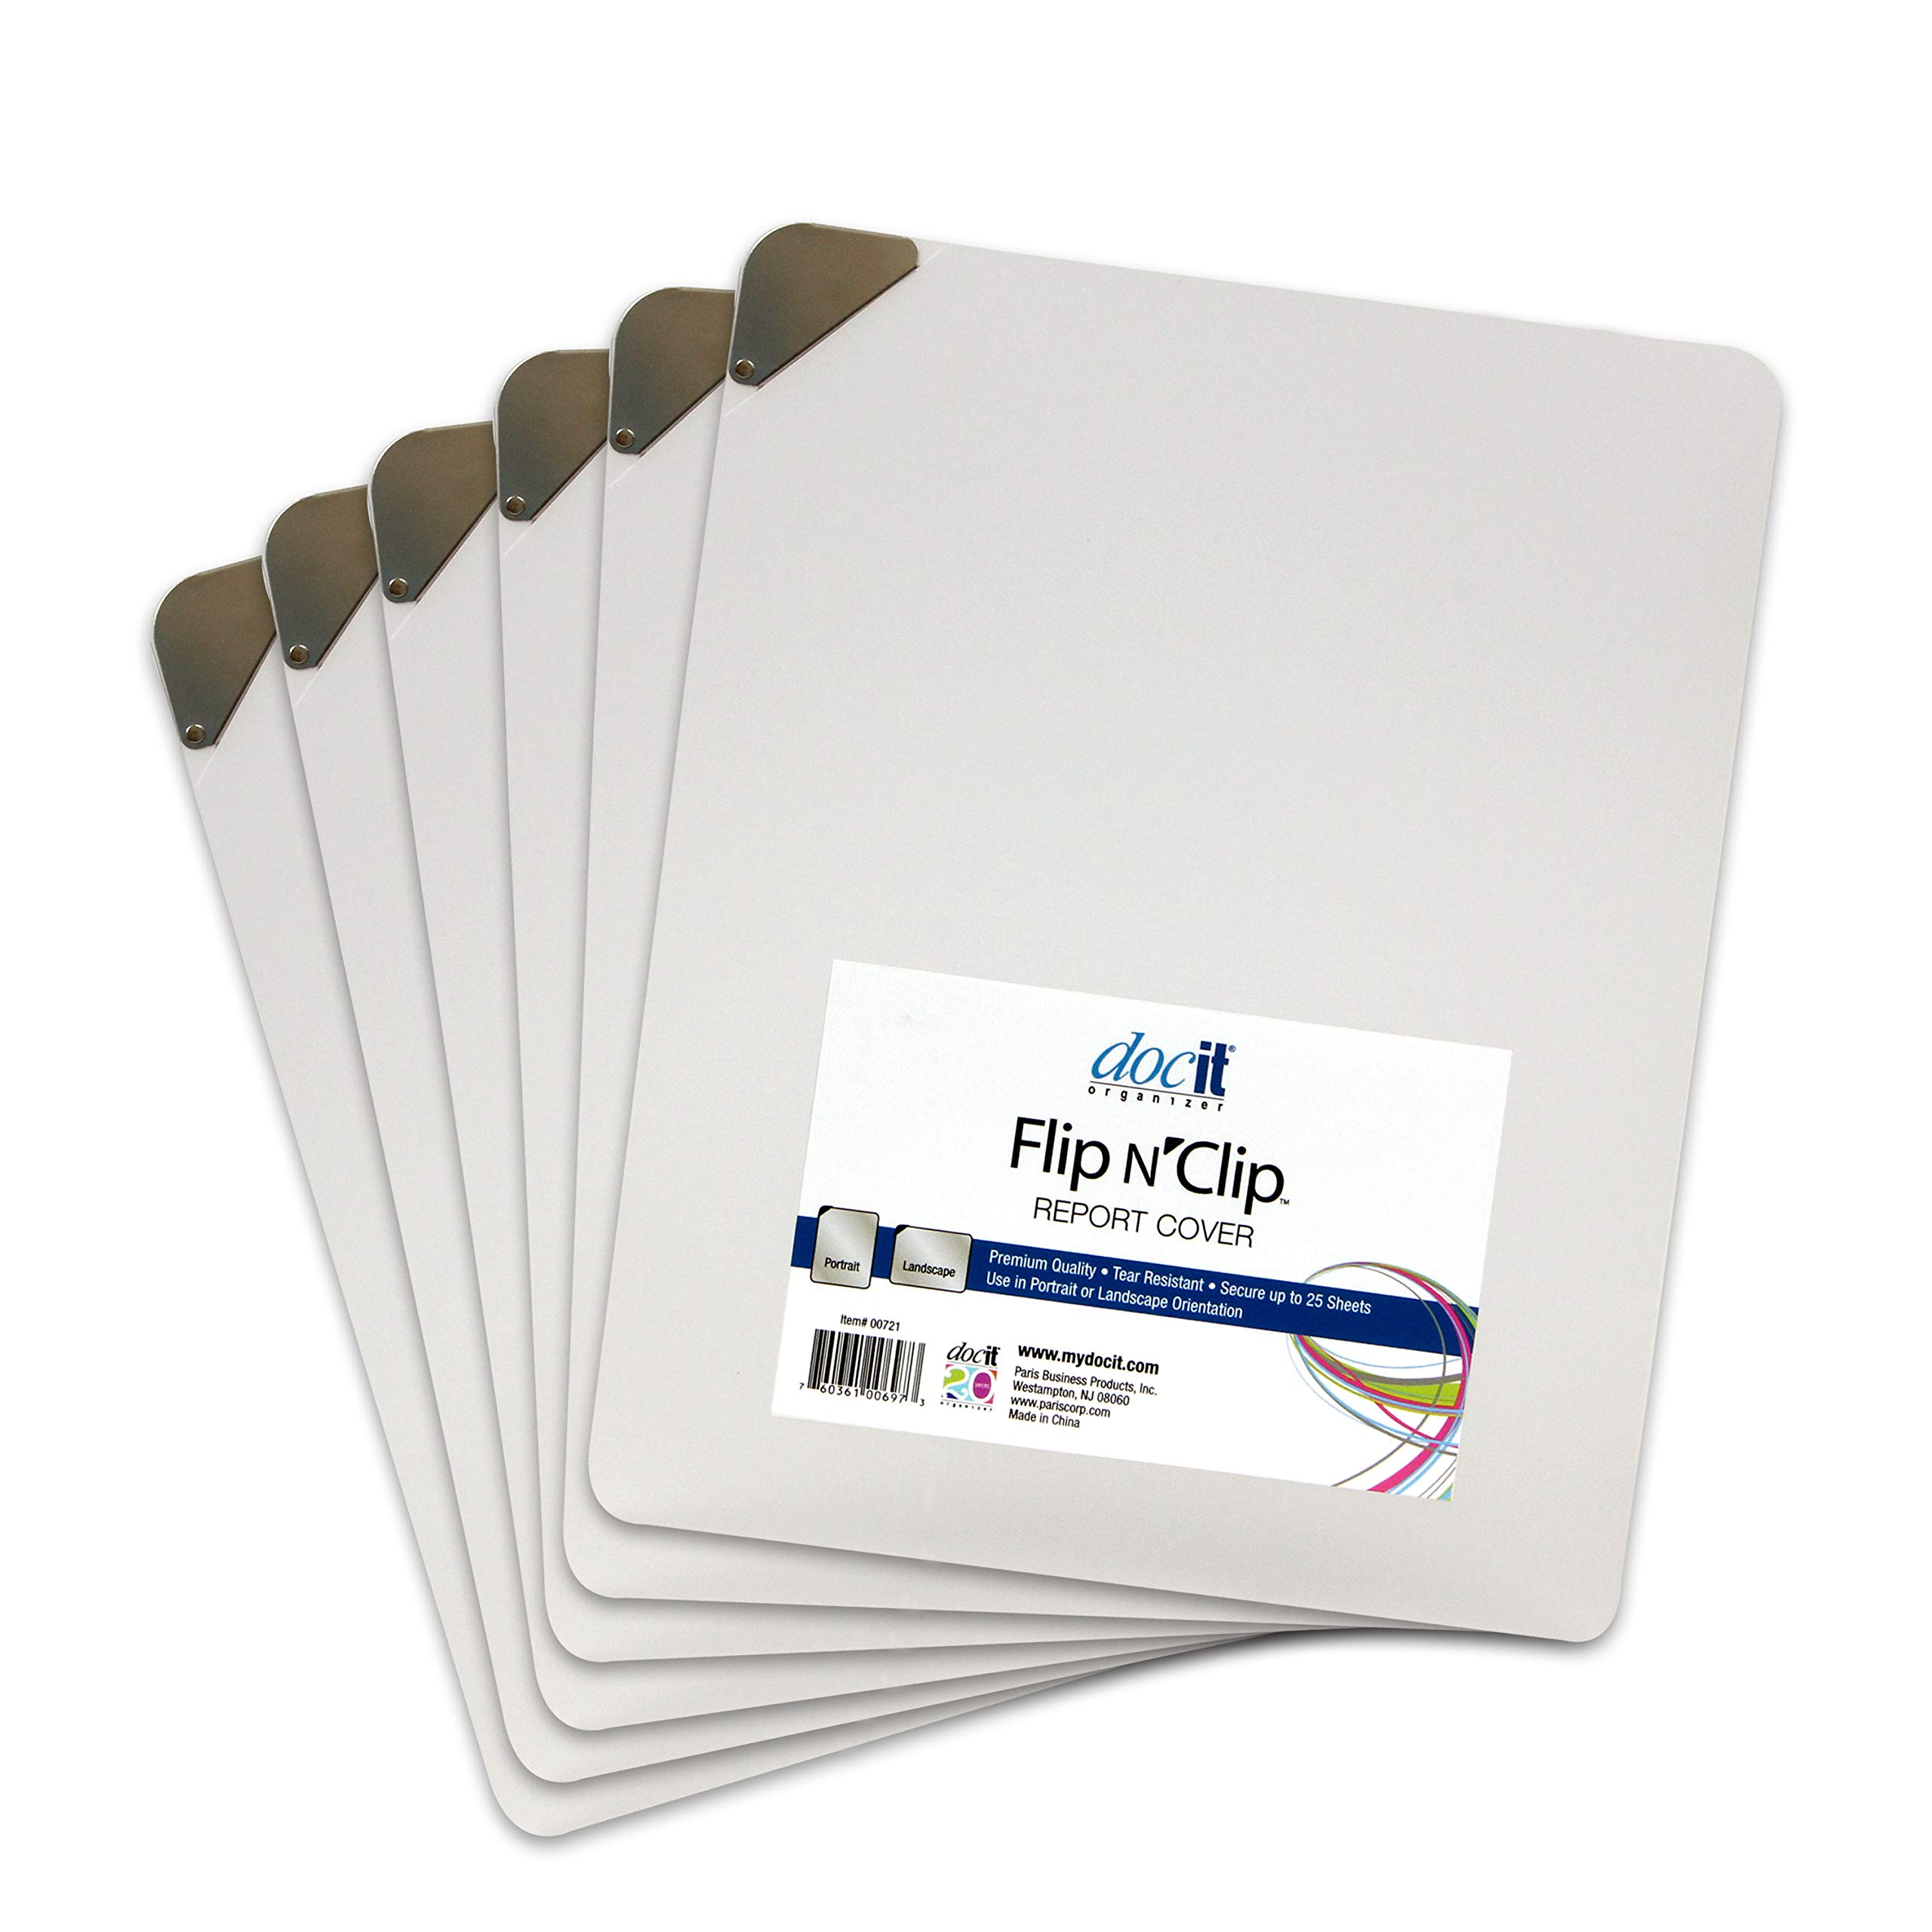 DocIt Flip n' Clip Report Cover with Swing Clip, Works with Portrait or Landscape Presentations, Holds 25 Sheets, 6-Pack, Frosted (00721-C)